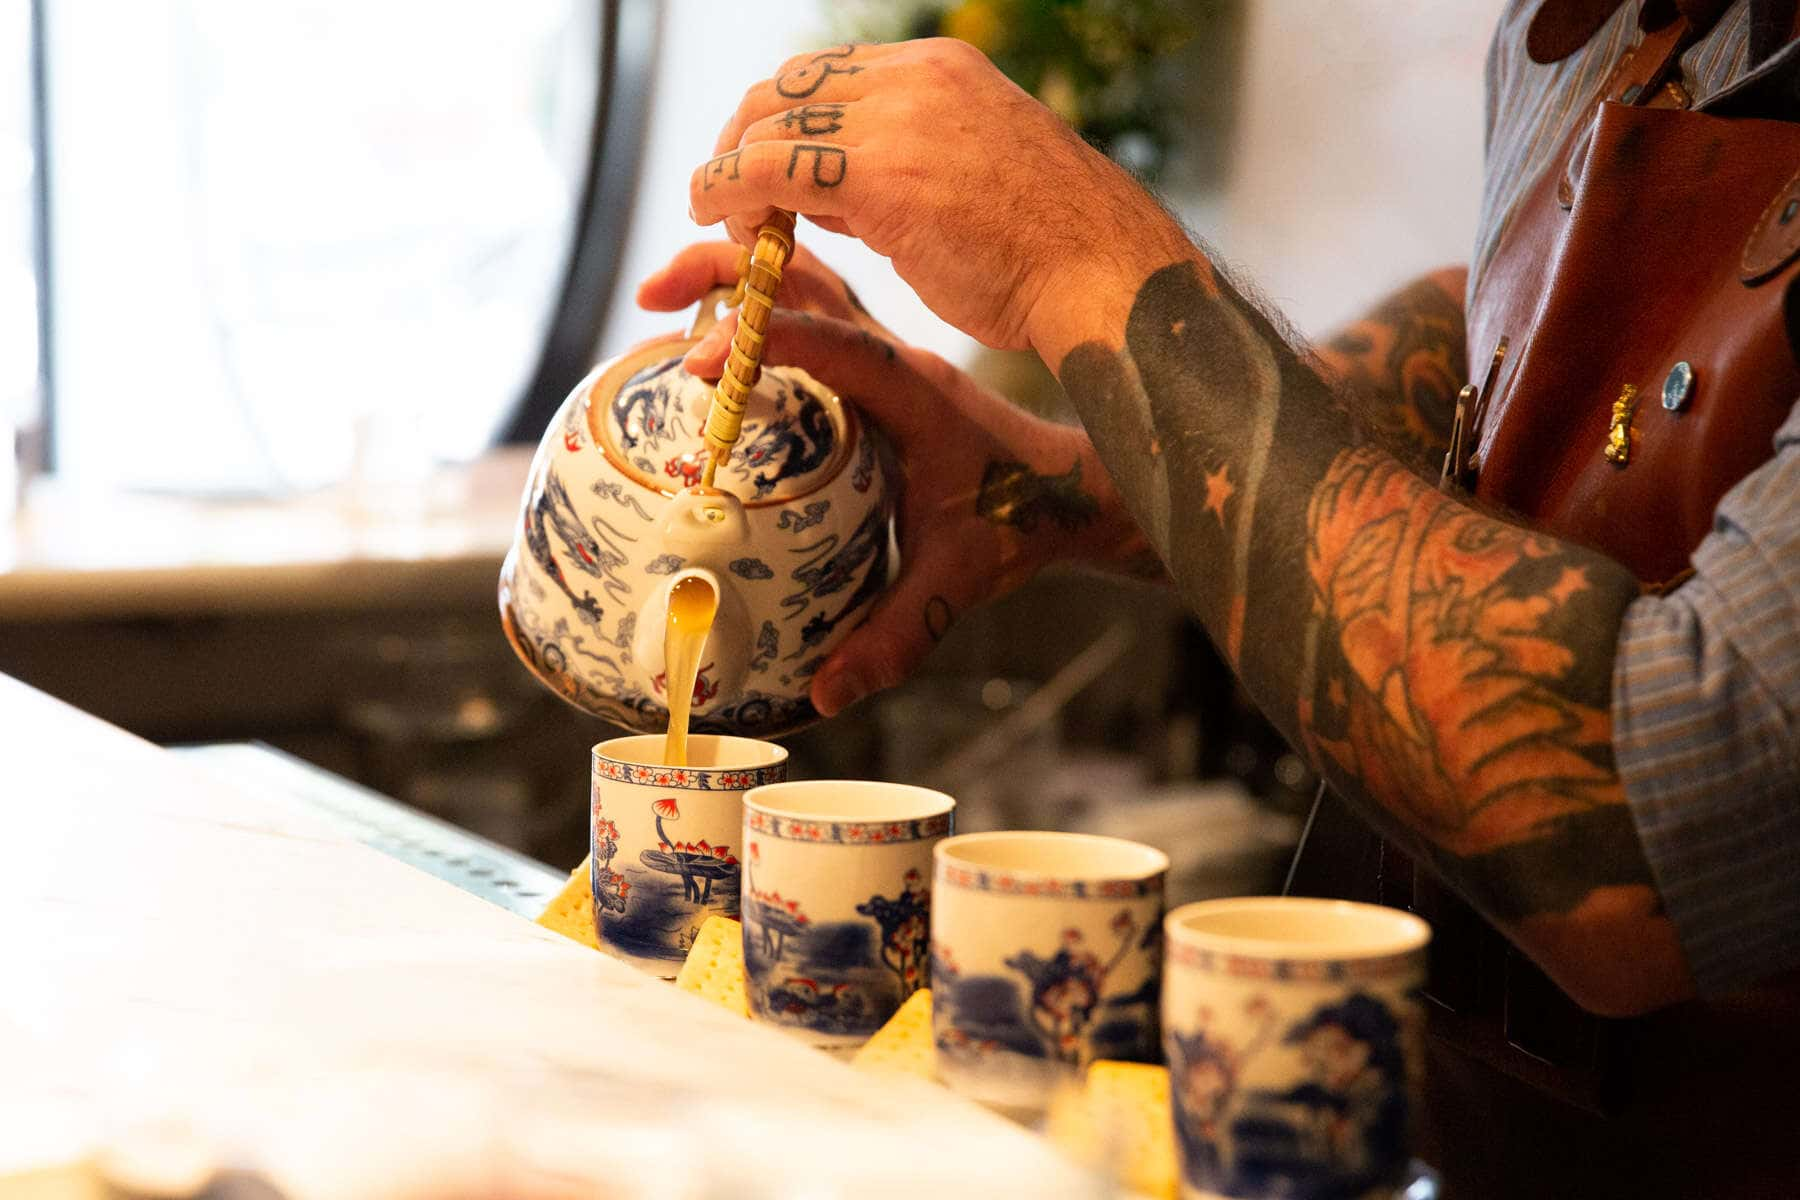 tea cocktail being pored by tattooed bartender